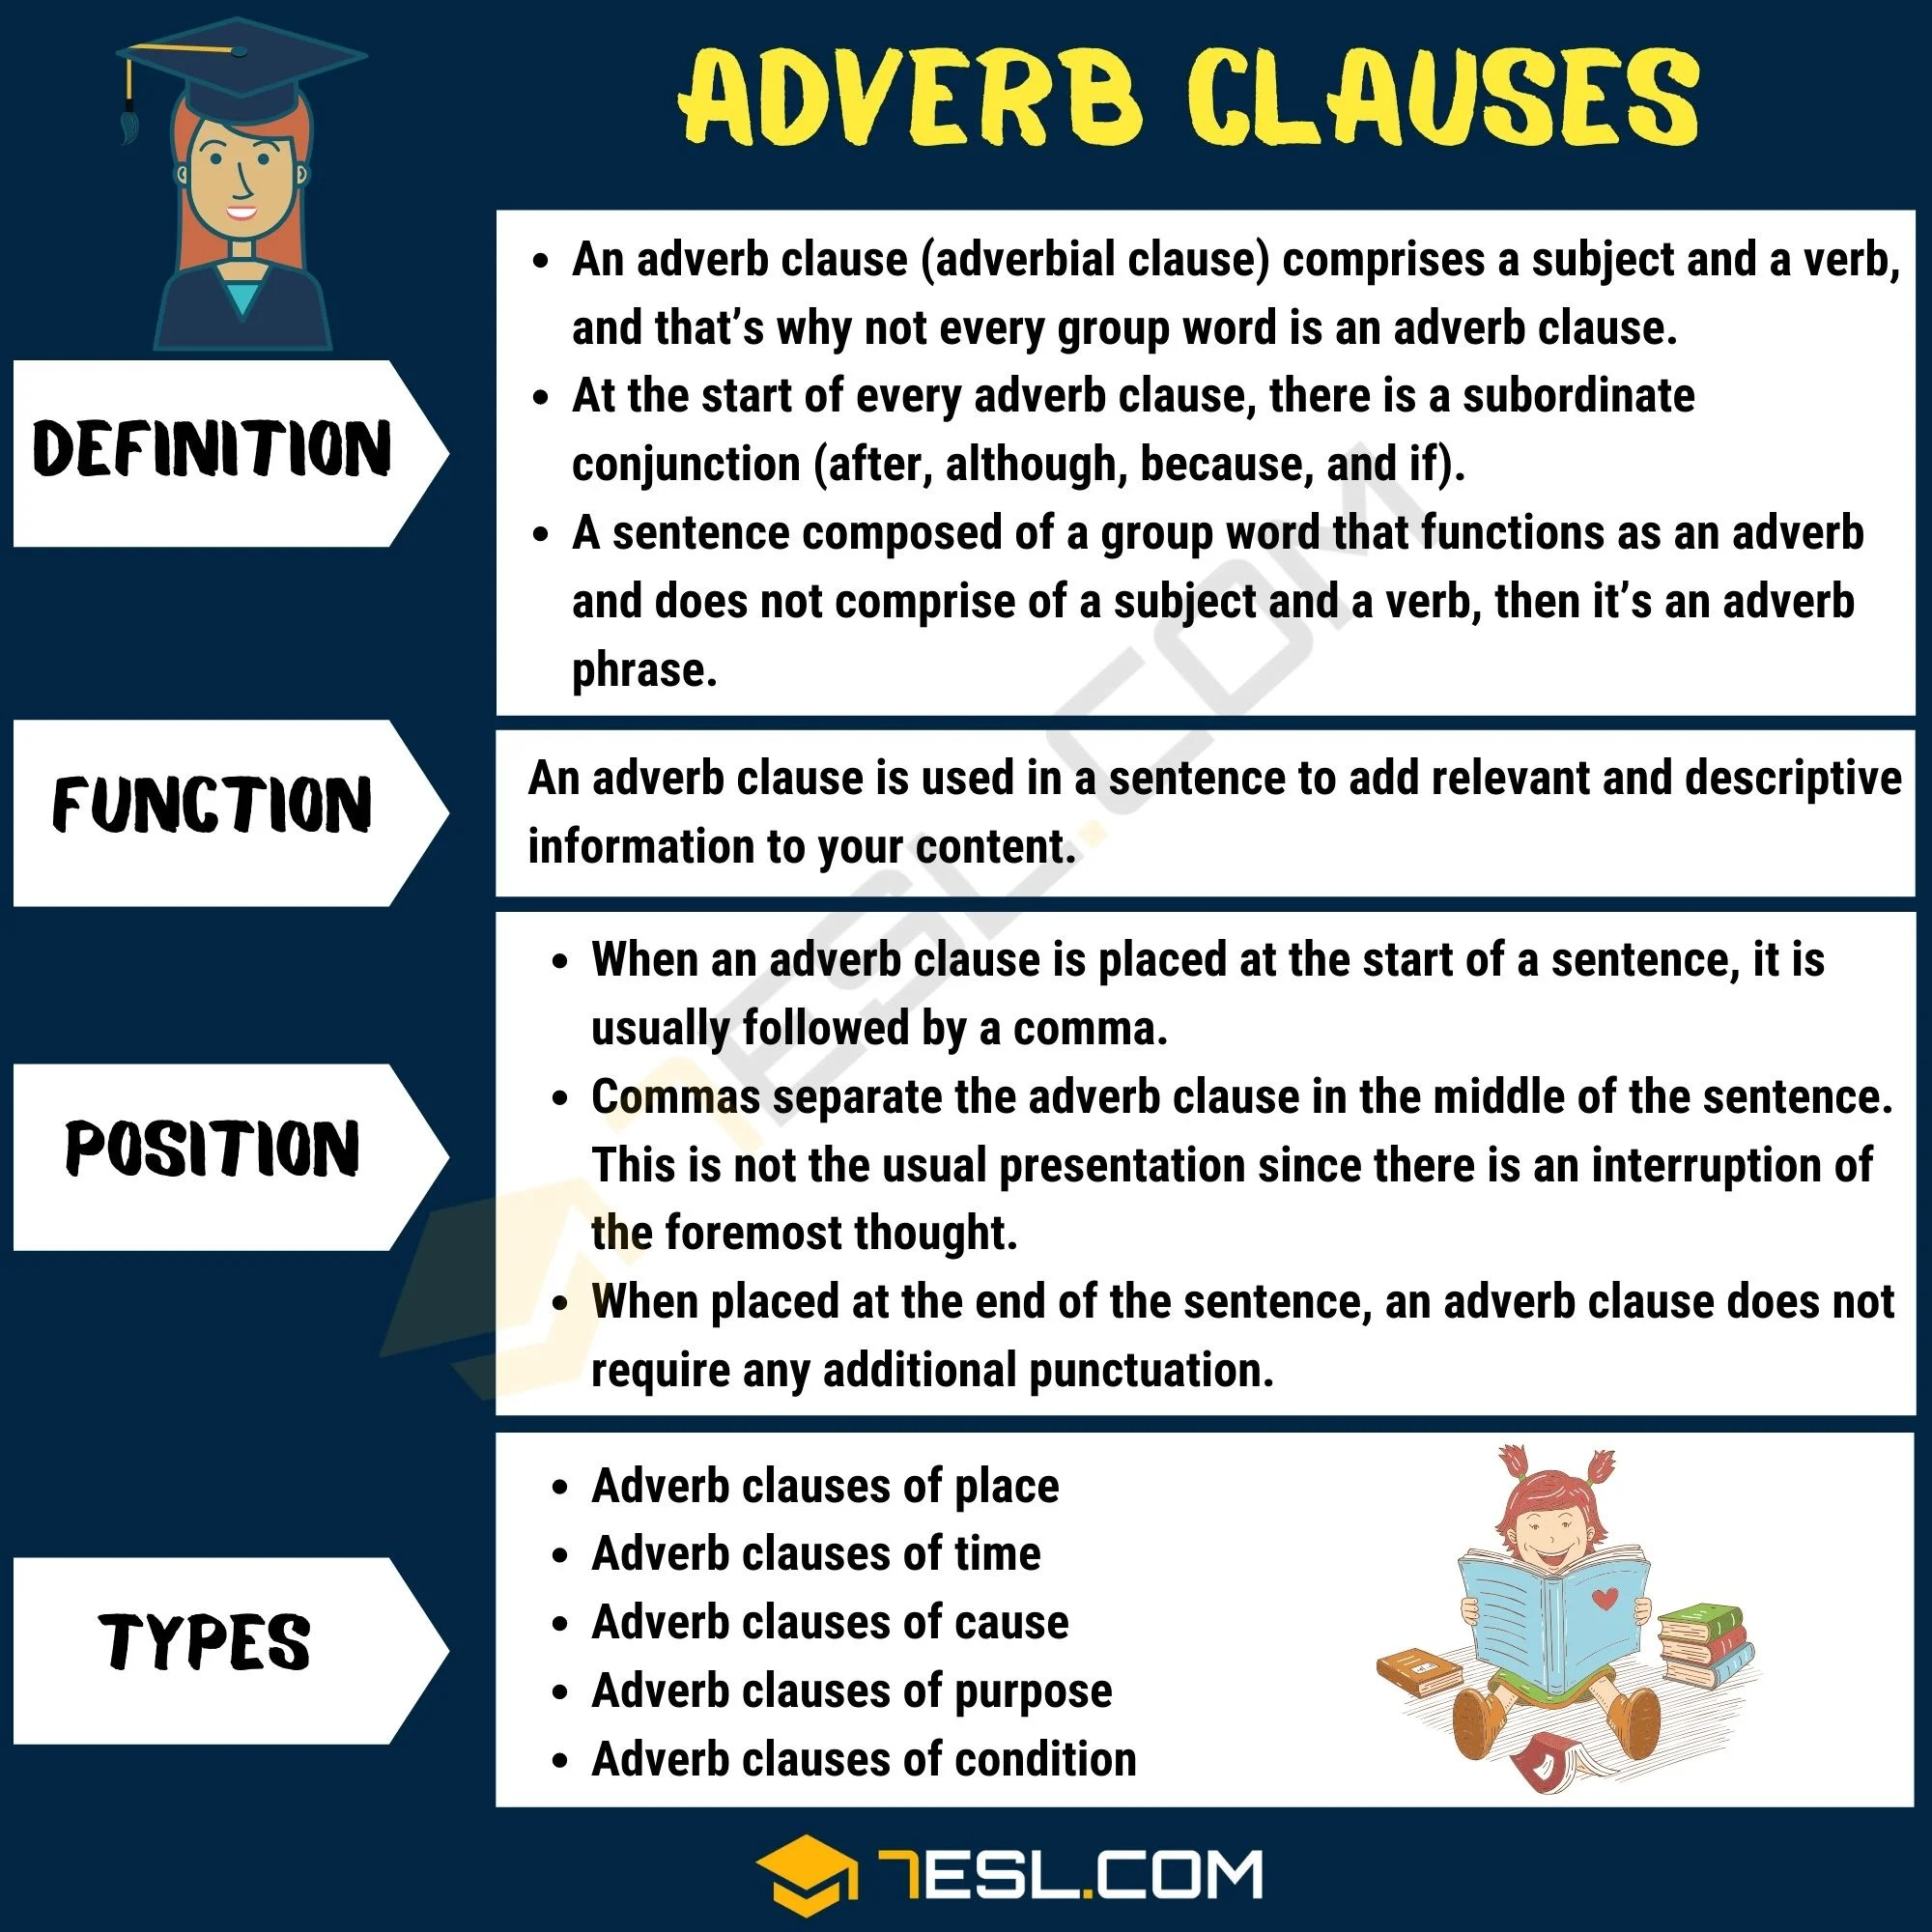 hight resolution of Adverb Clause: Types of Adverbial Clauses with Useful Examples • 7ESL